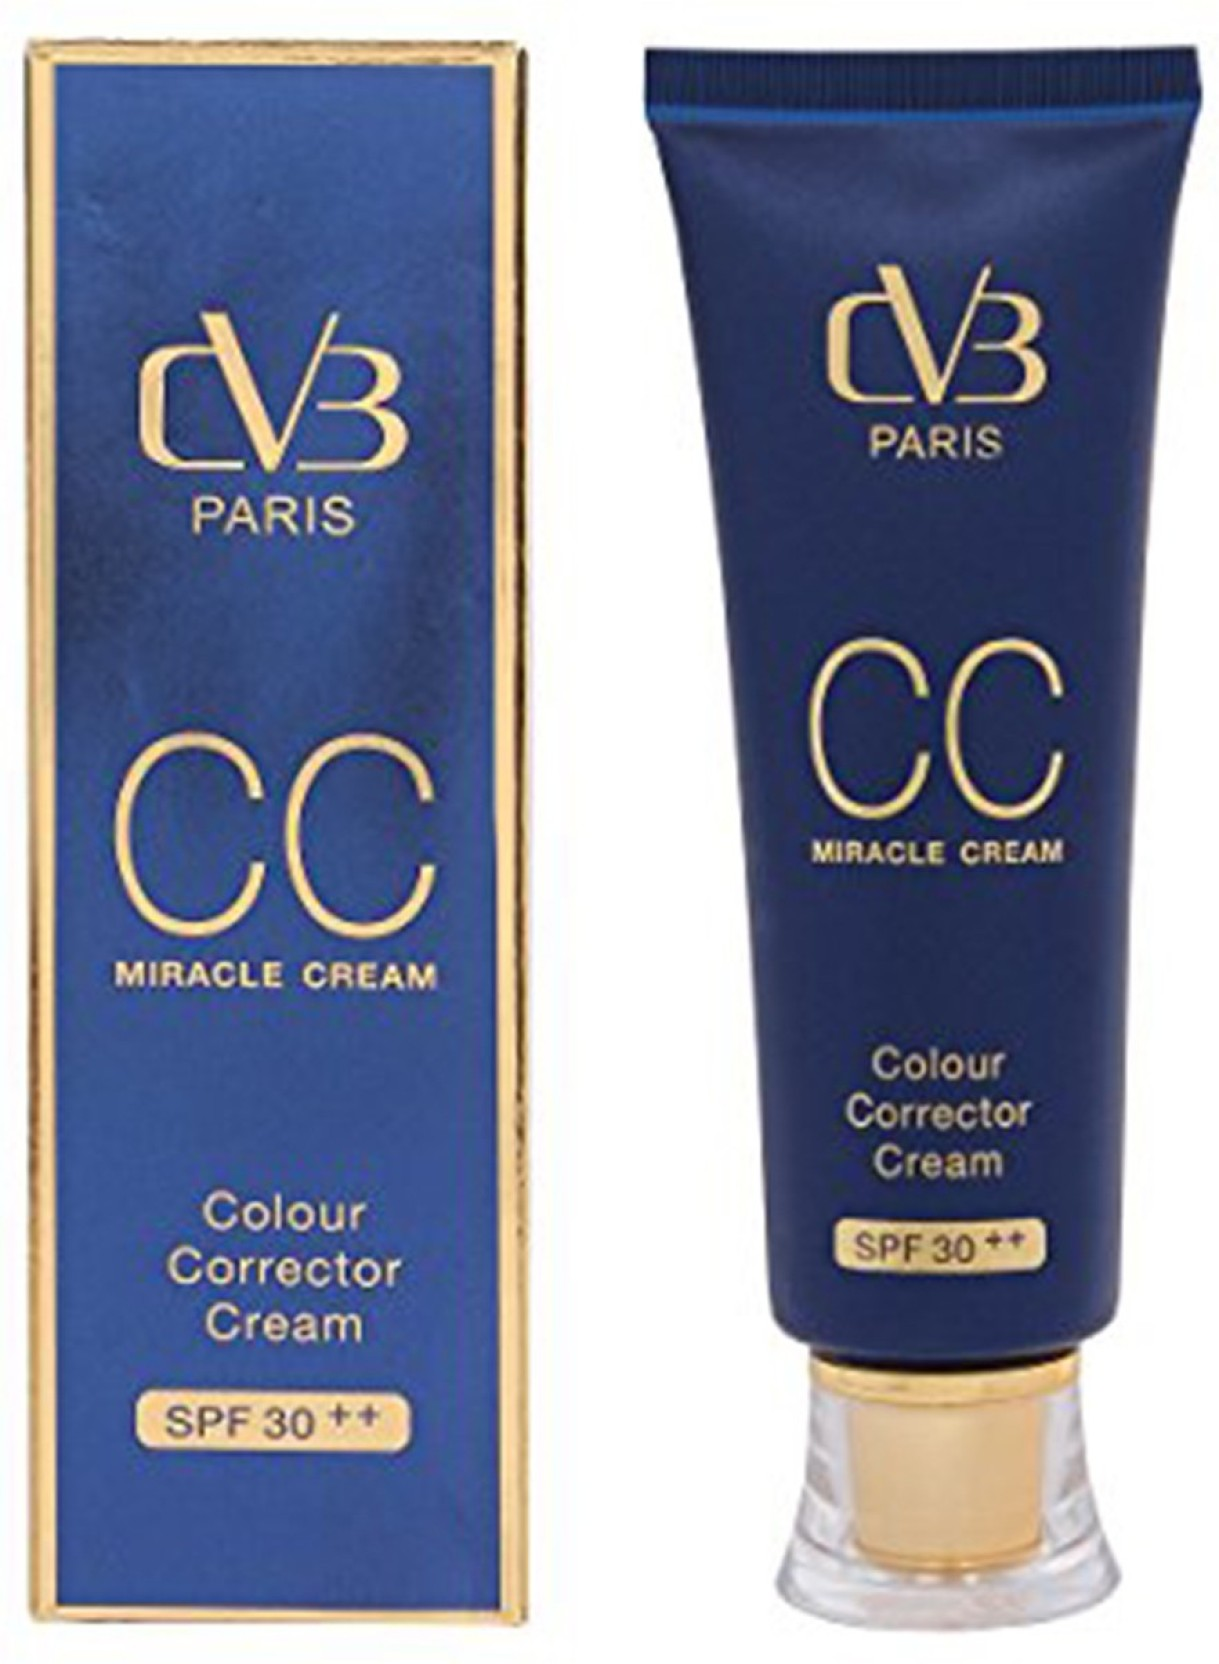 Cvb Paris Cc Miracle Cream Foundation Spf 30 50gm Price In Fair N Pink Moisturizer Whitening Uv Protector On Offer